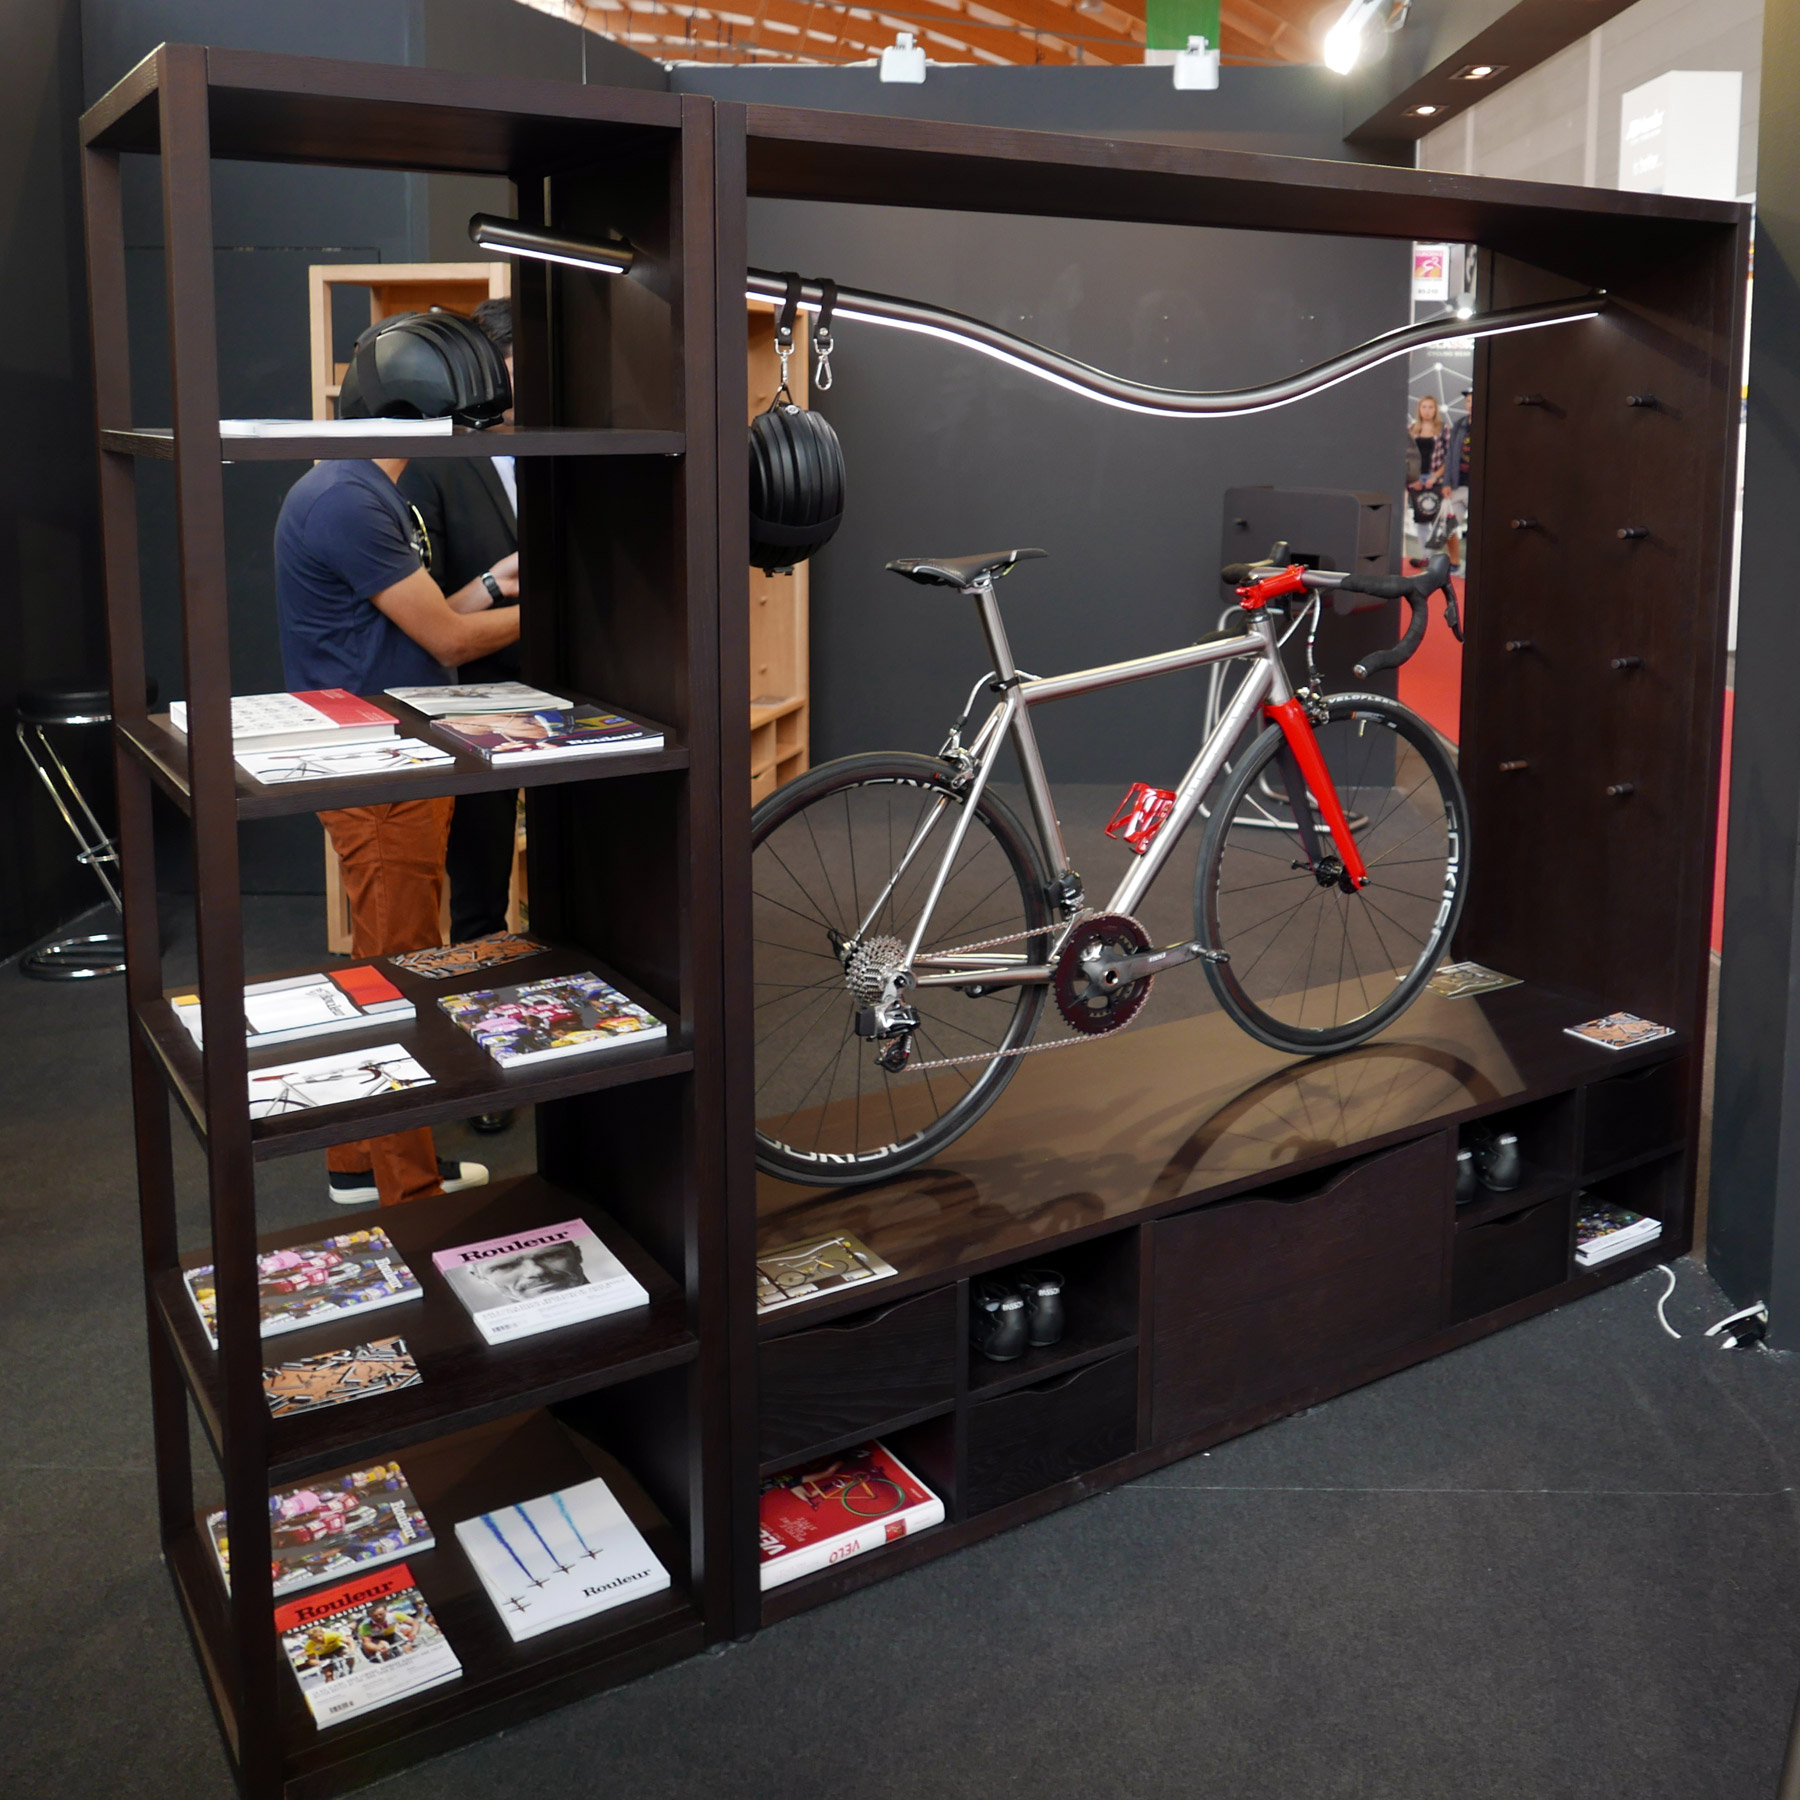 Eb16 Vadolibero Has The Ultimate Way To Store Show